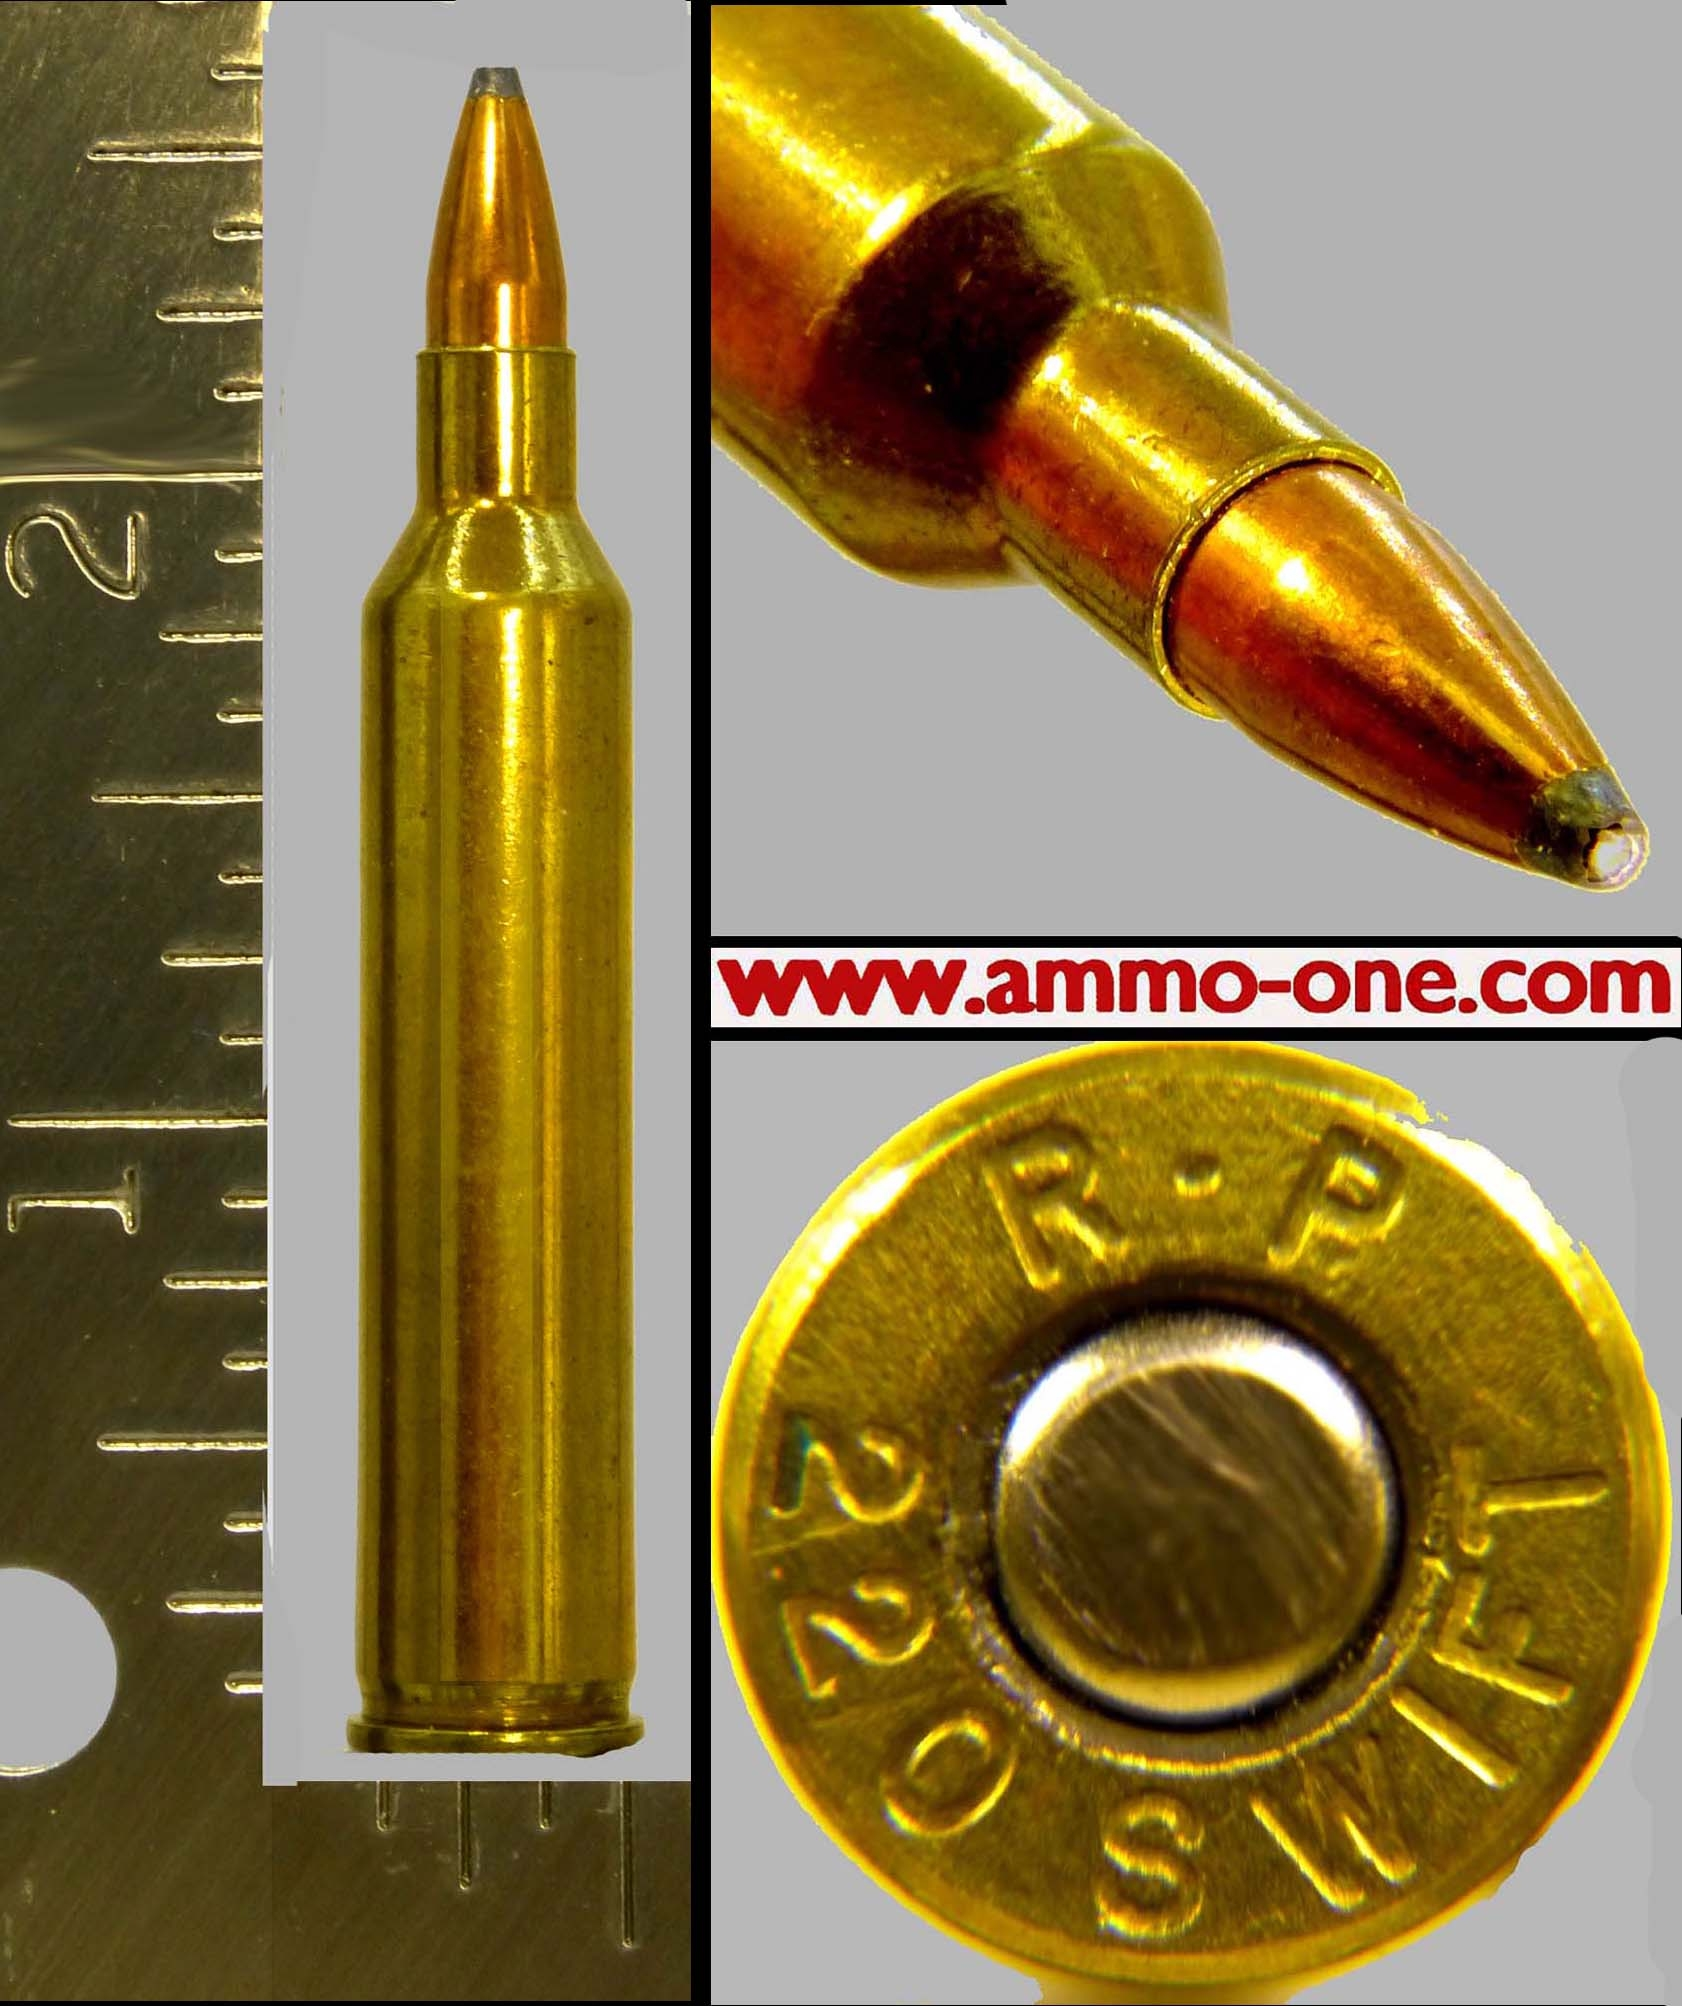 220 Weatherby Rocket Wildcat ammo ammunition for sale